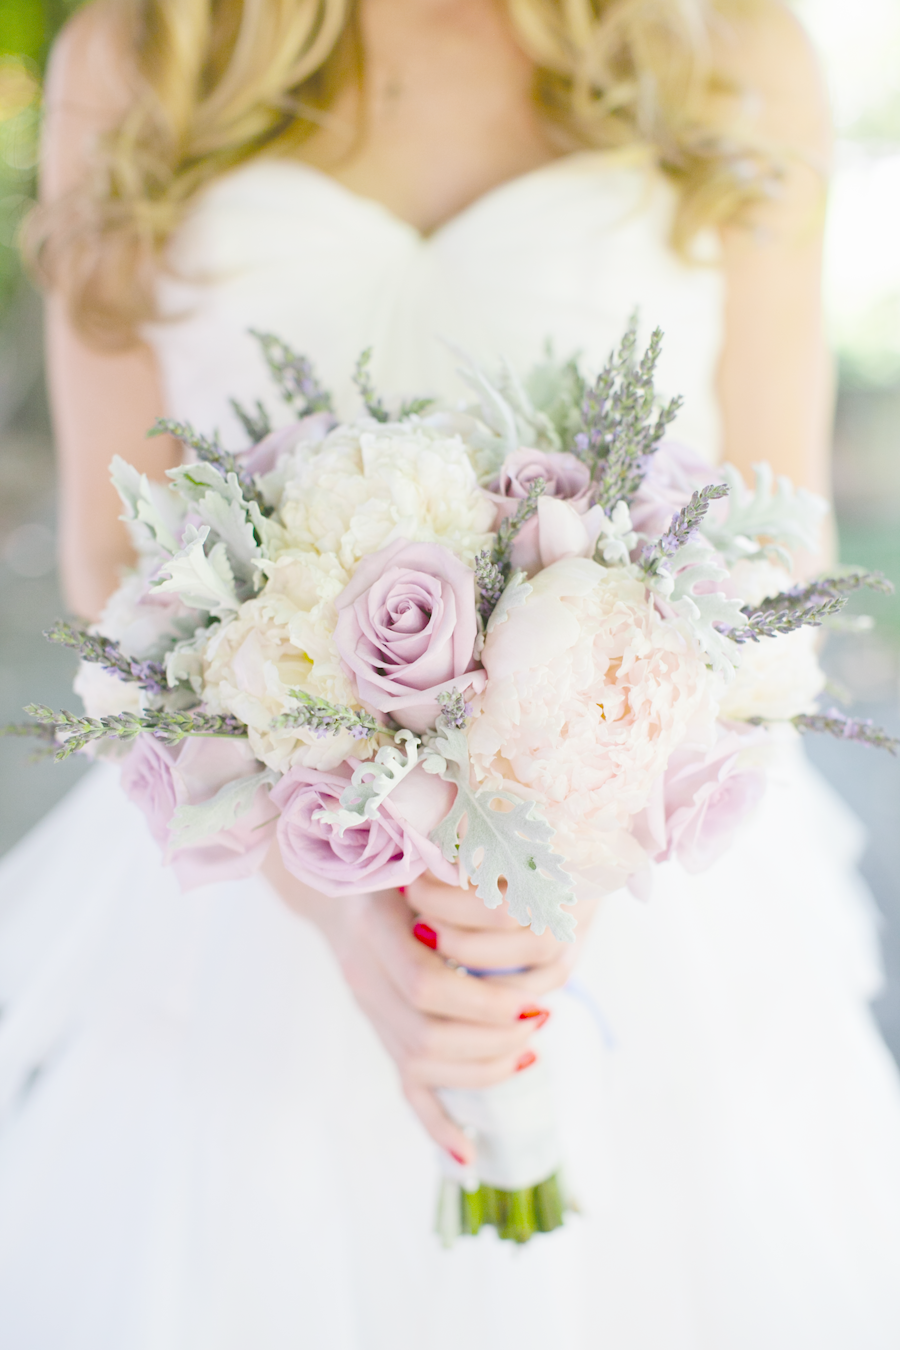 #peony, #bouquet, #rose  Photography: Gladys Jem Photography - gladysjem.com Design + Planning: Charmed Events Group, LLC - charmedeventsplanning.com Floral Design: Poppy\'s Petalworks - poppyspetalworks.com  Read More: http://www.stylemepretty.com/2013/06/11/spring-inspired-love-shoot-from-charmed-events-group-gladys-jem-photography/